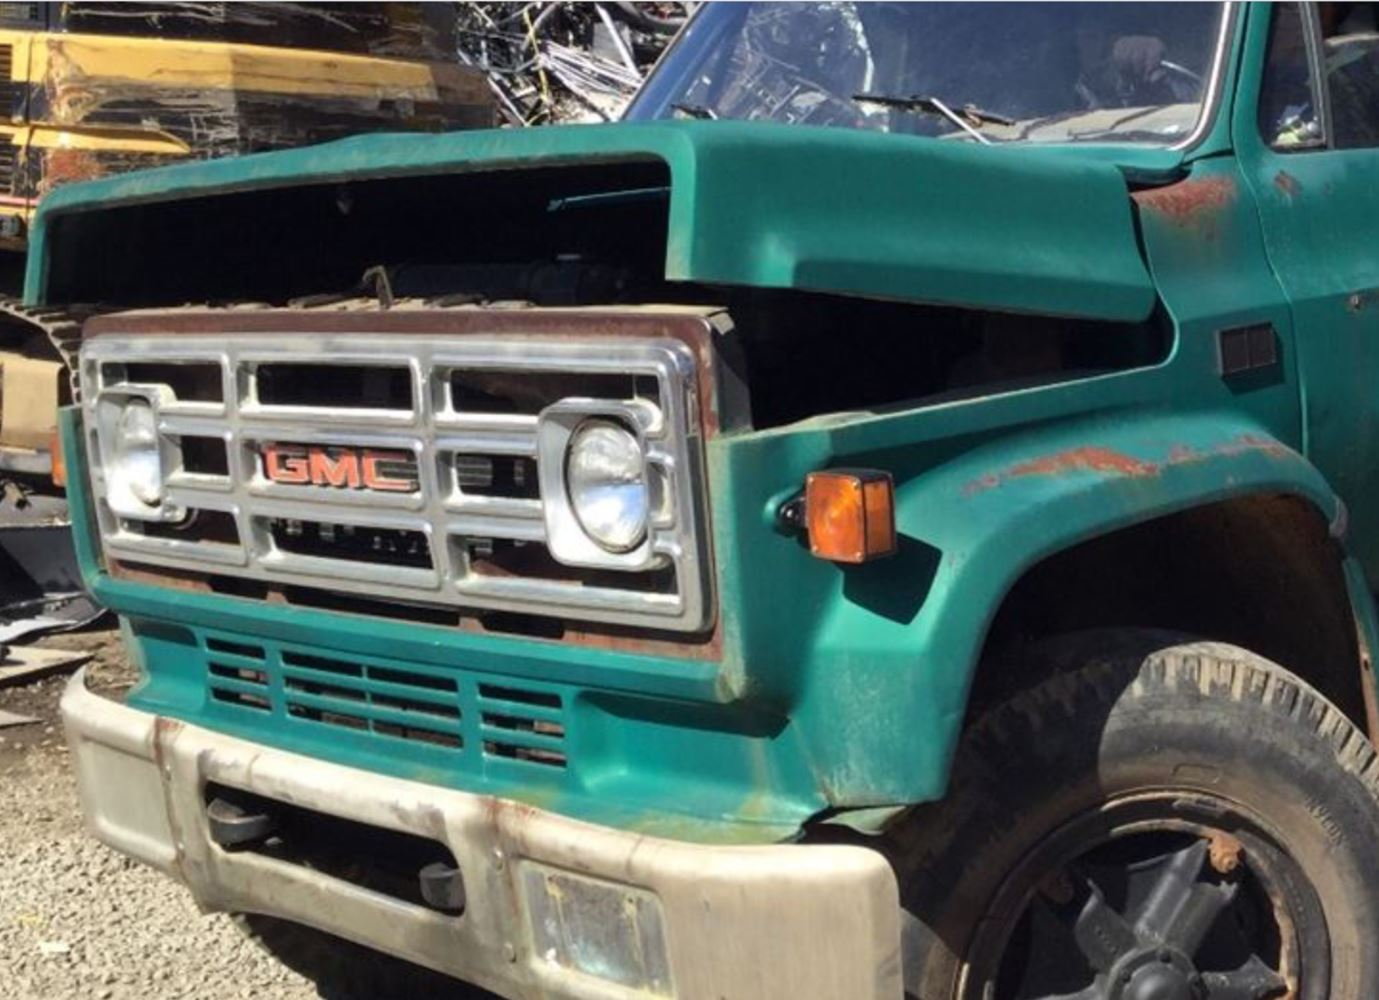 dump gmc equipment topkick truck point central oregon sale heavyequipmentaddetails used for in img heavy